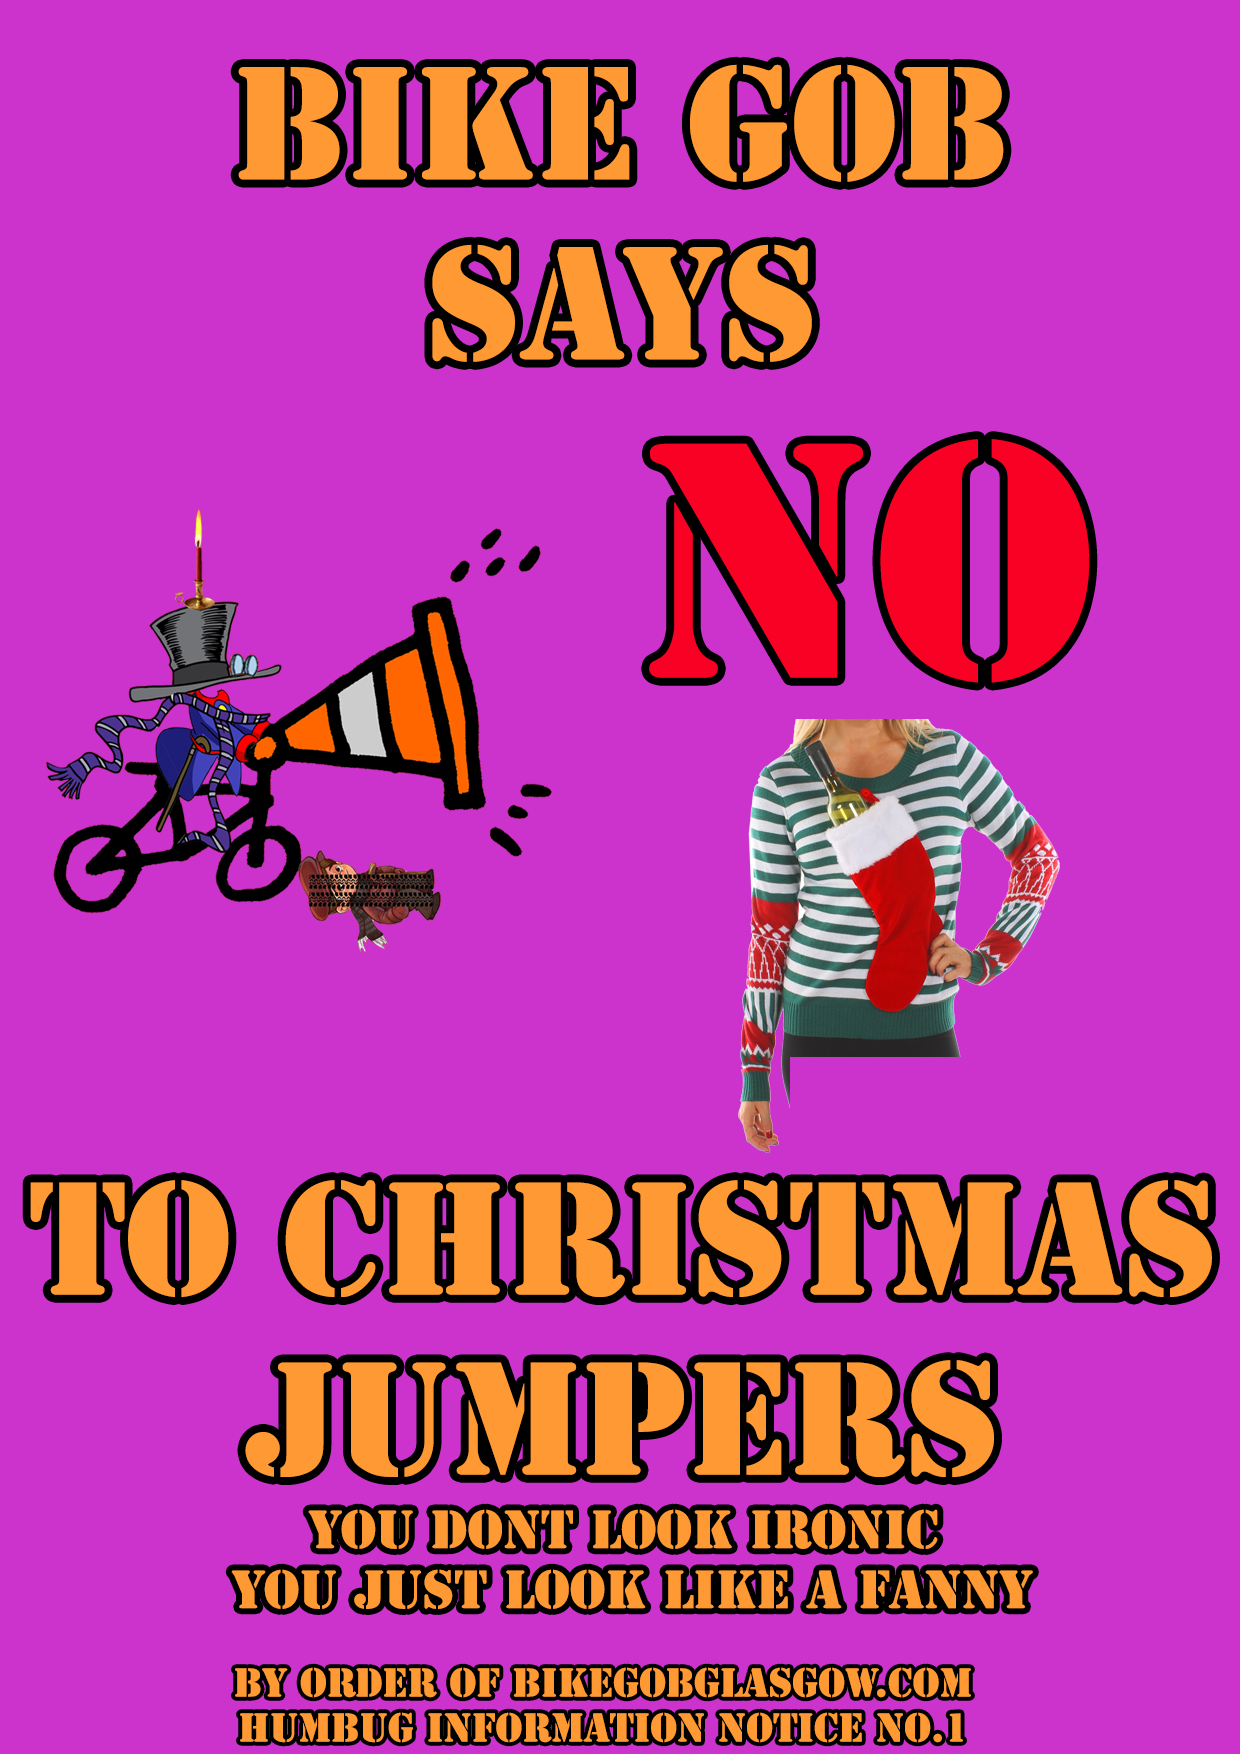 NoToChristmasJumpers